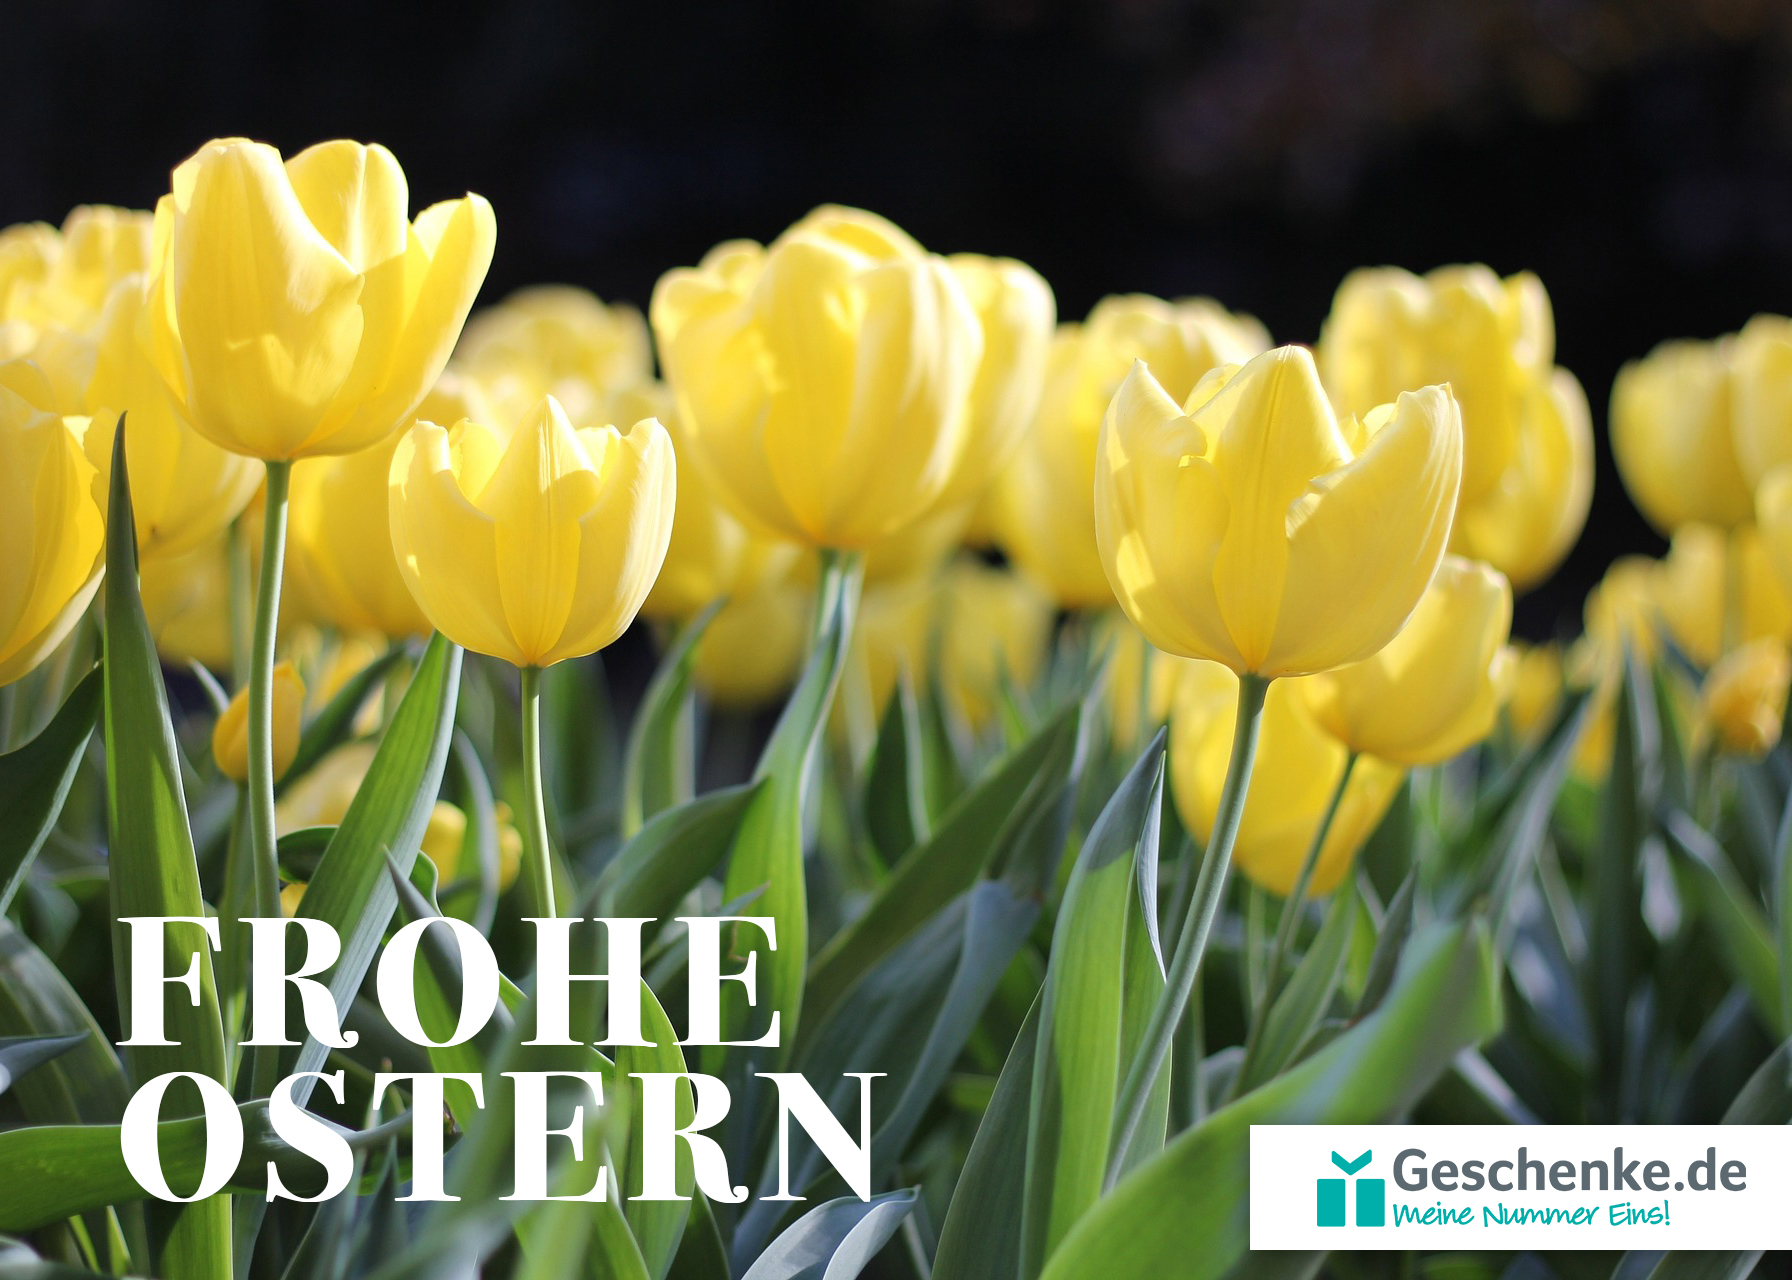 Hübsche Osterbilder Als Download